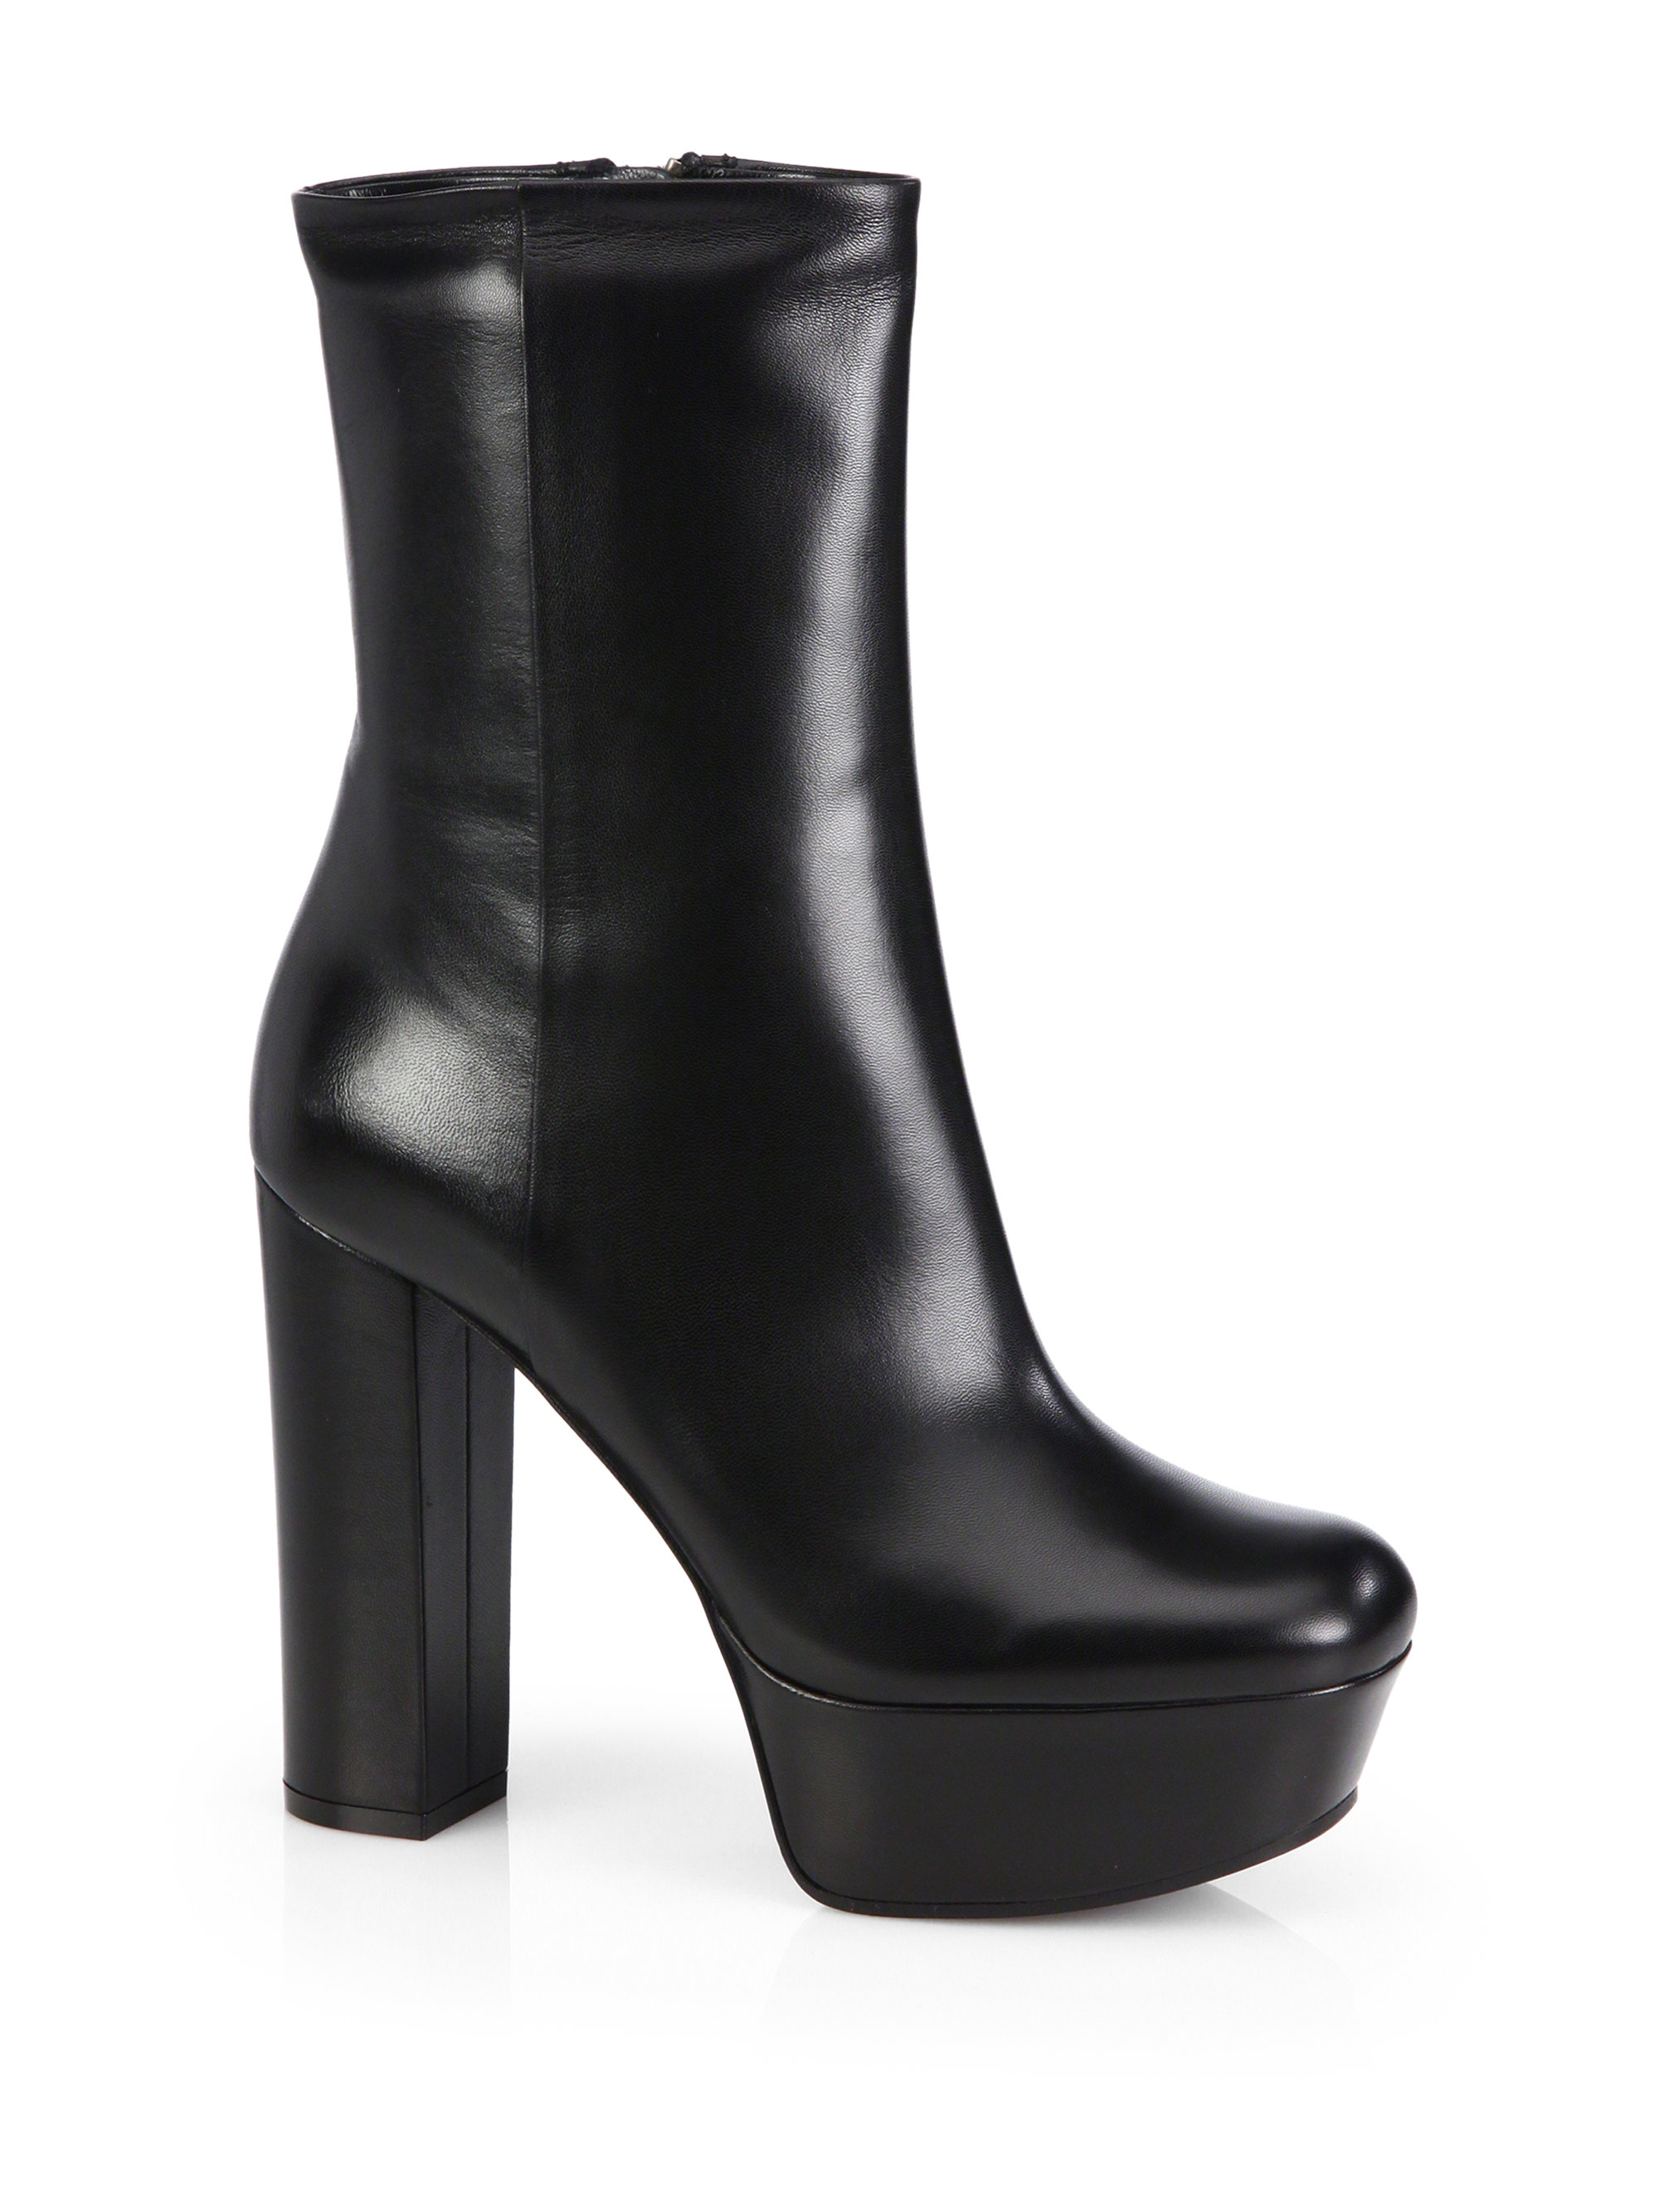 e4129253cba1 Lyst - Gucci Leather Platform Ankle Boots in Black